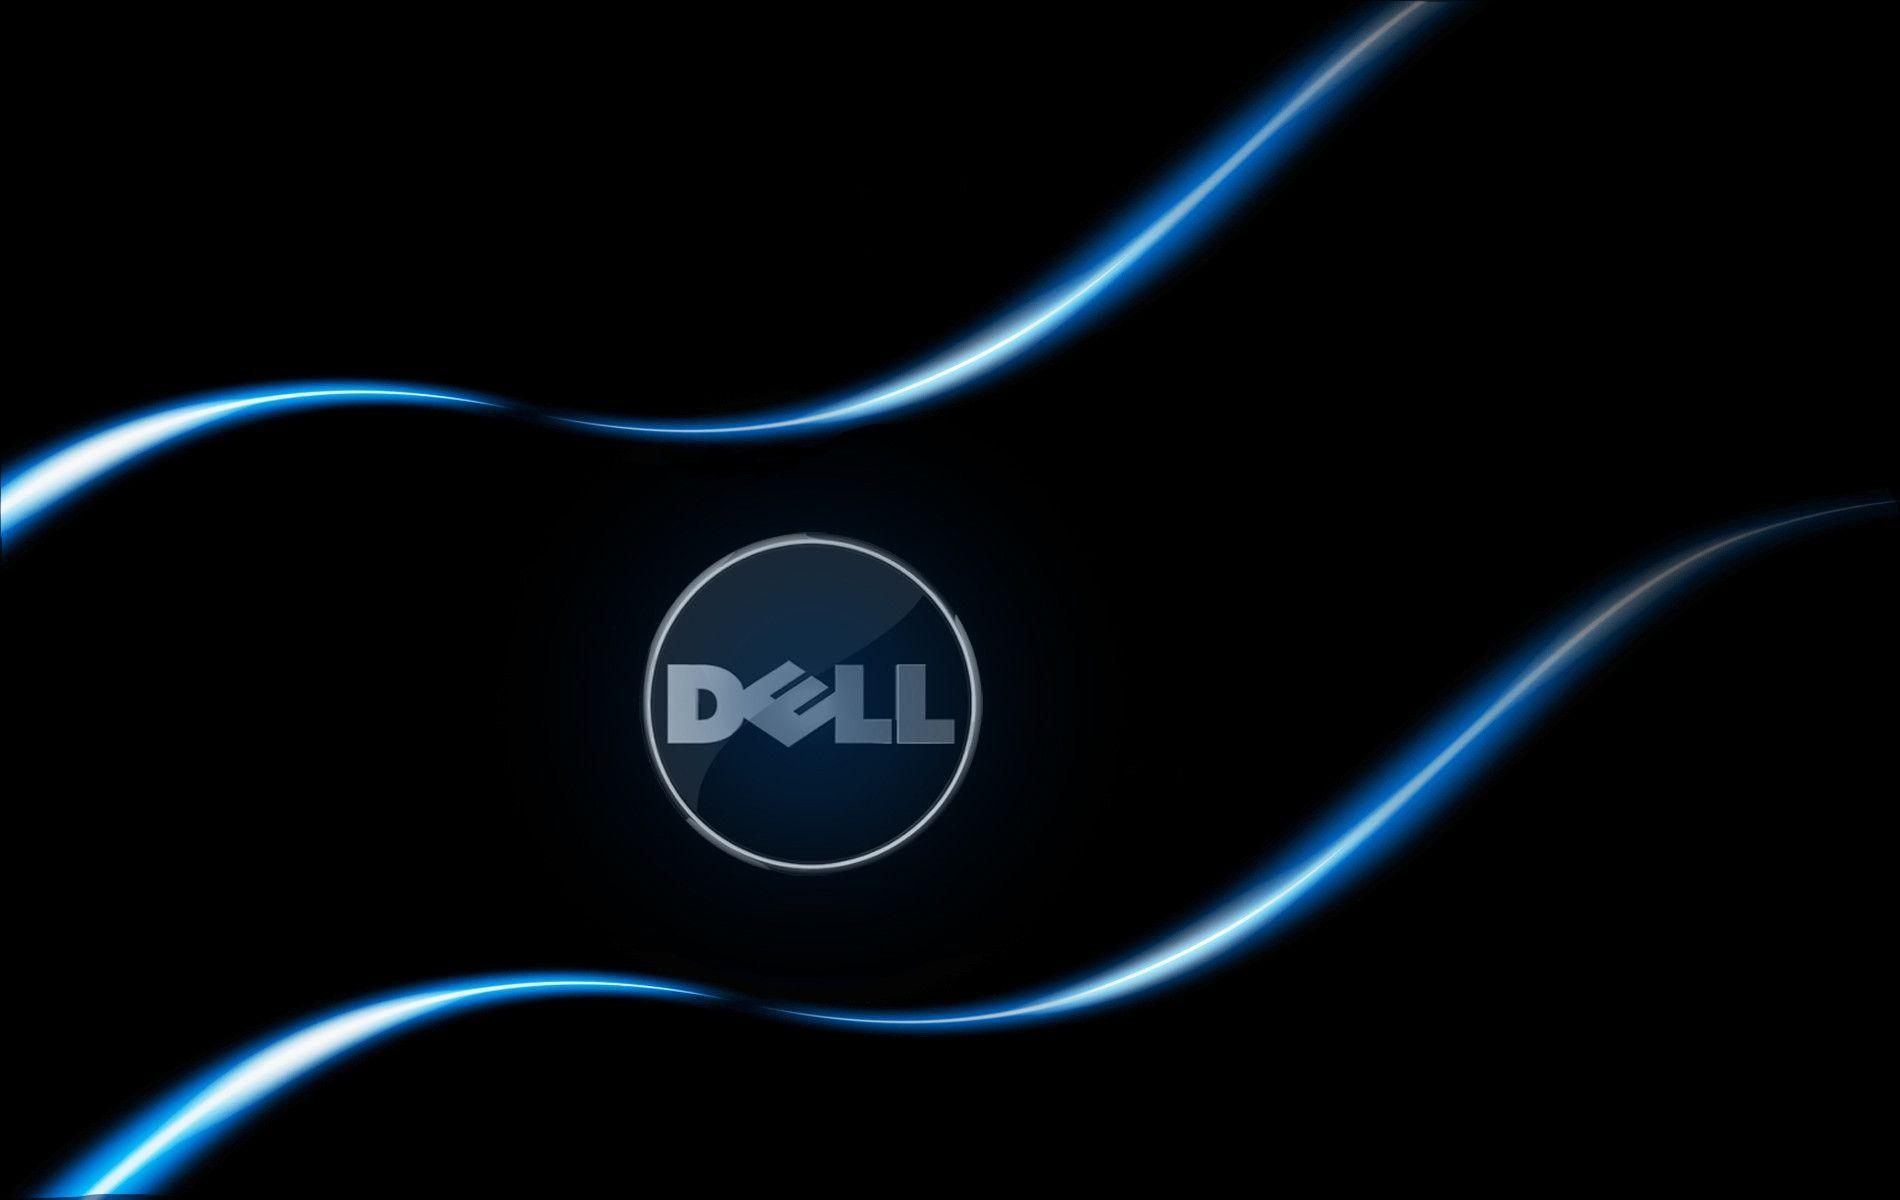 desktop wallpaper dell 38 -#main